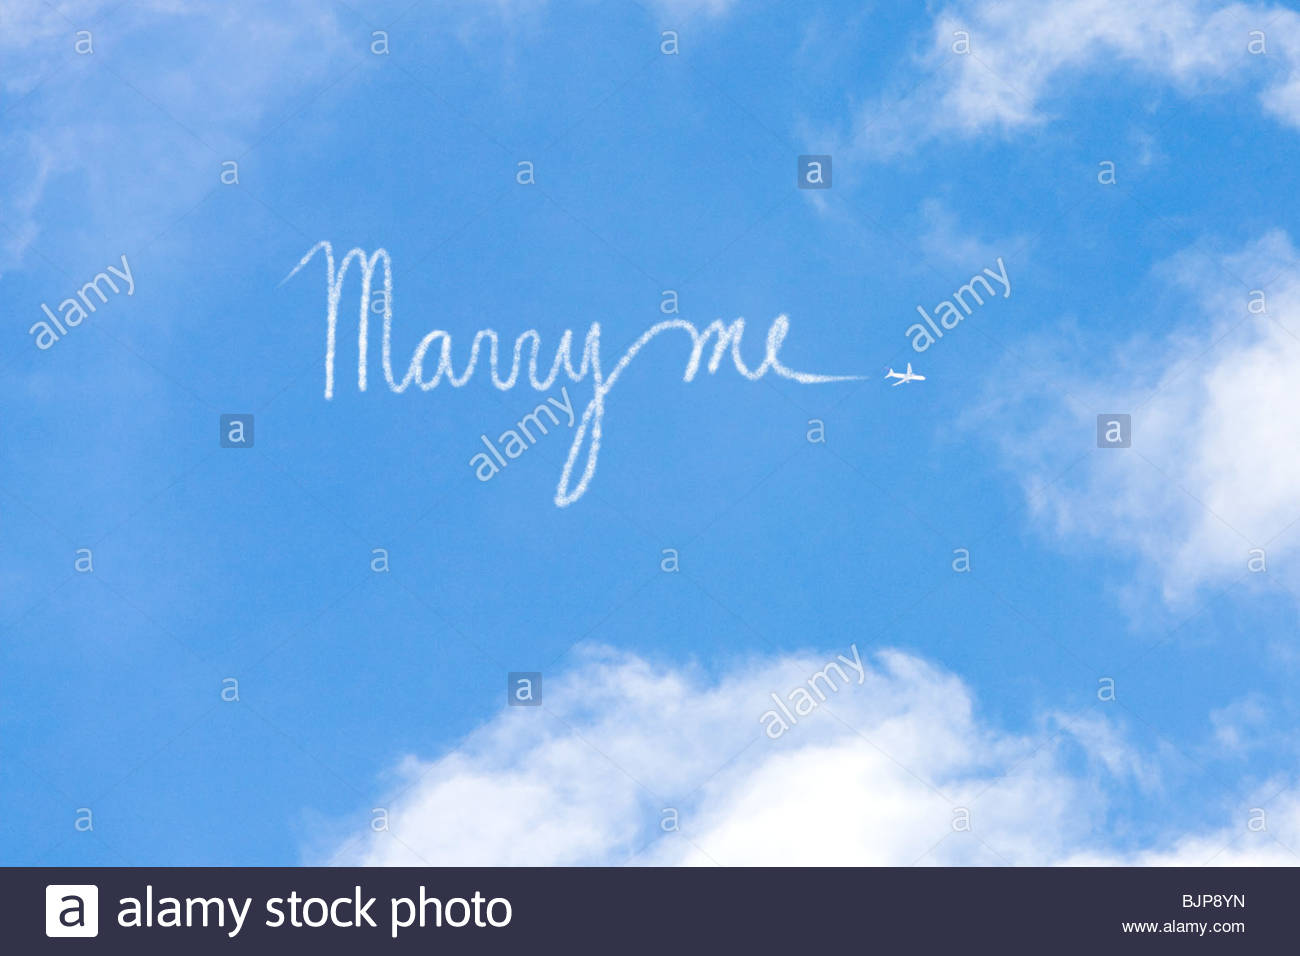 Proposal written in vapour trail - Stock Image